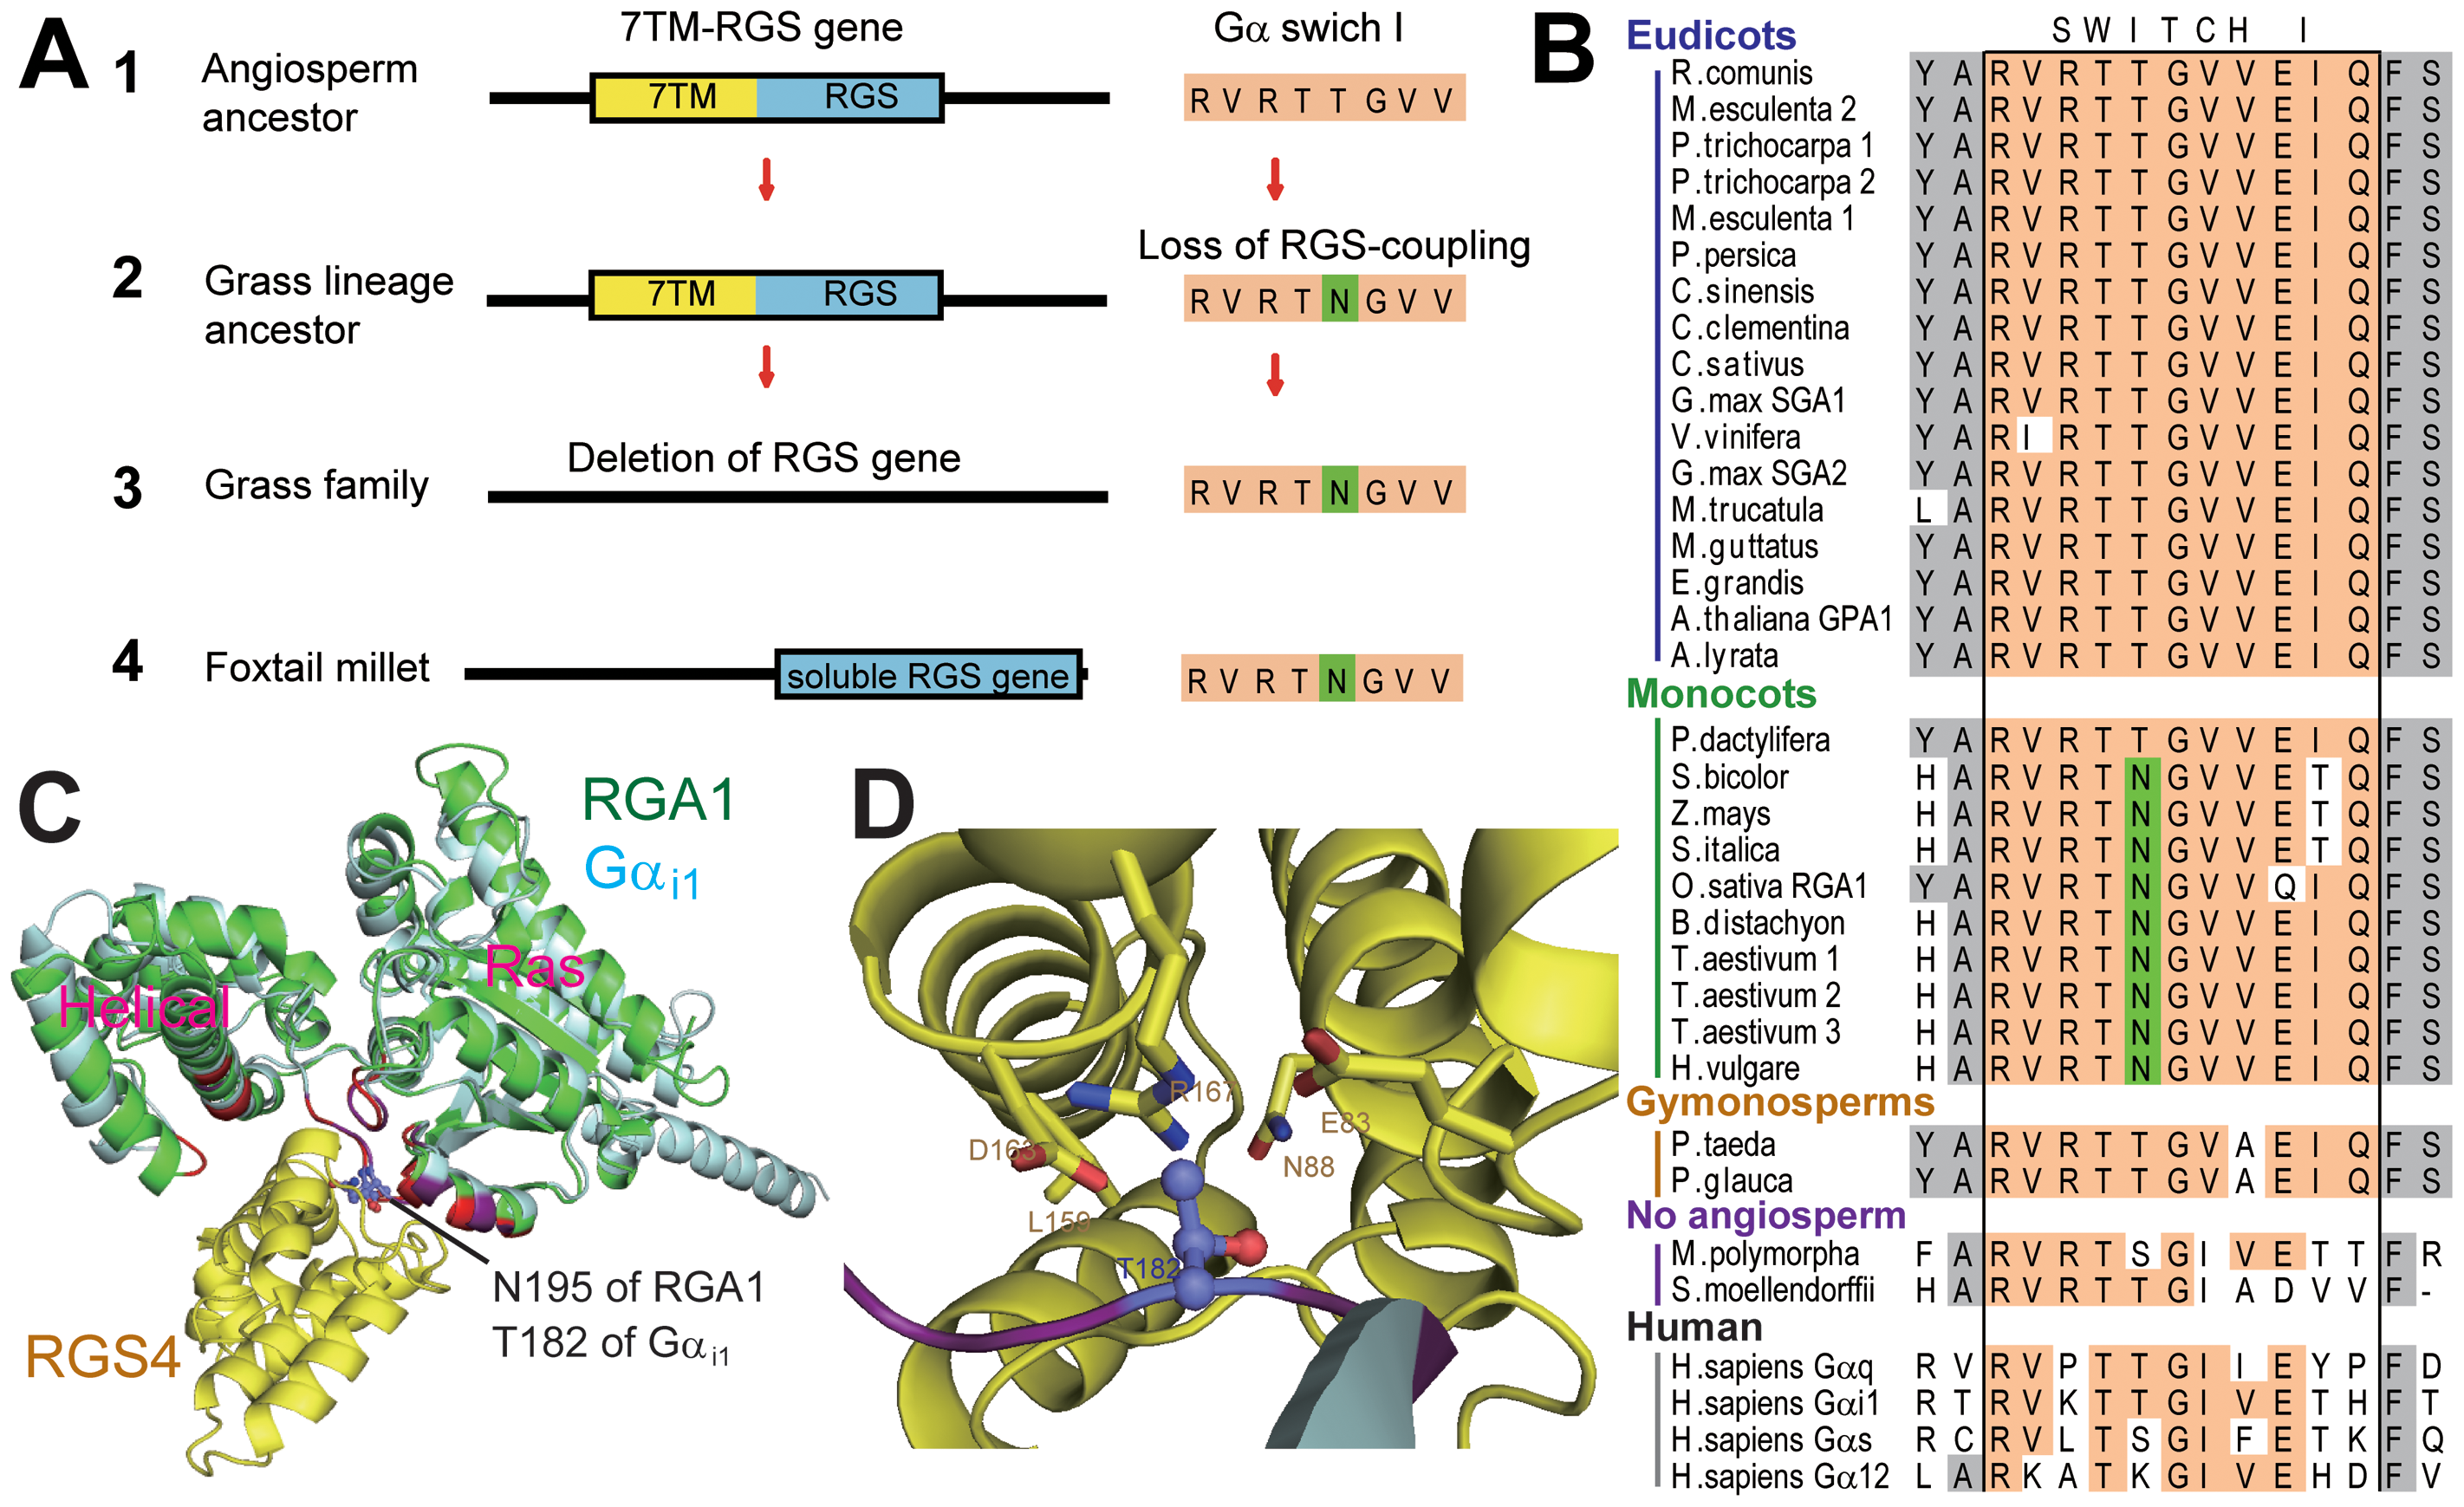 Evolution of monocot Gα and monocot specific loss of a 7TM-RGS gene.